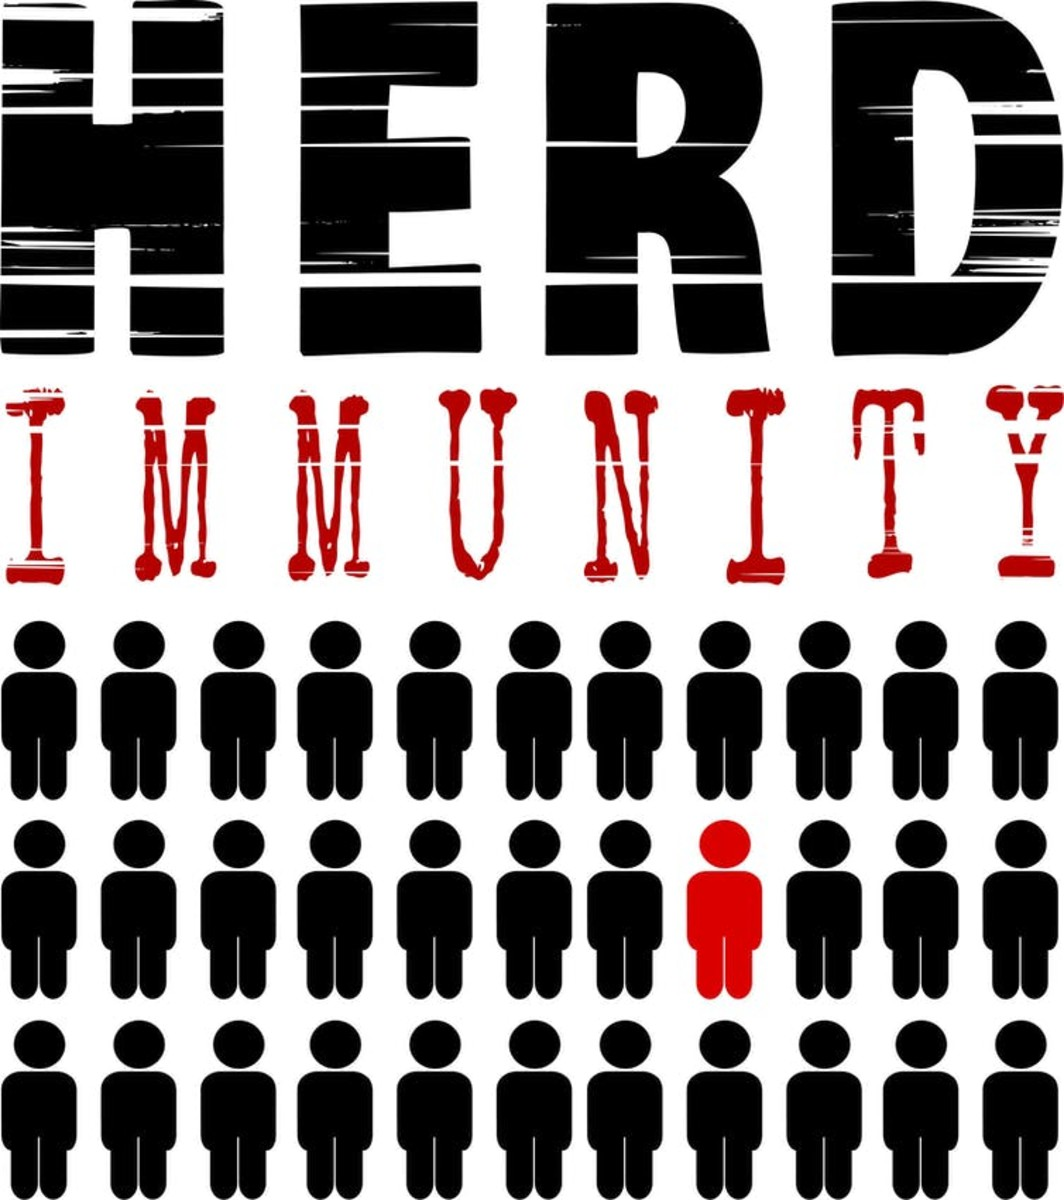 Herd immunity results when the majority of the population gains immunity to the virus either through vaccination or infection. When this happens, vulnerable people who cannot get vaccinated are protected by the 'herd.' smodj/iStock/Getty Images Plus